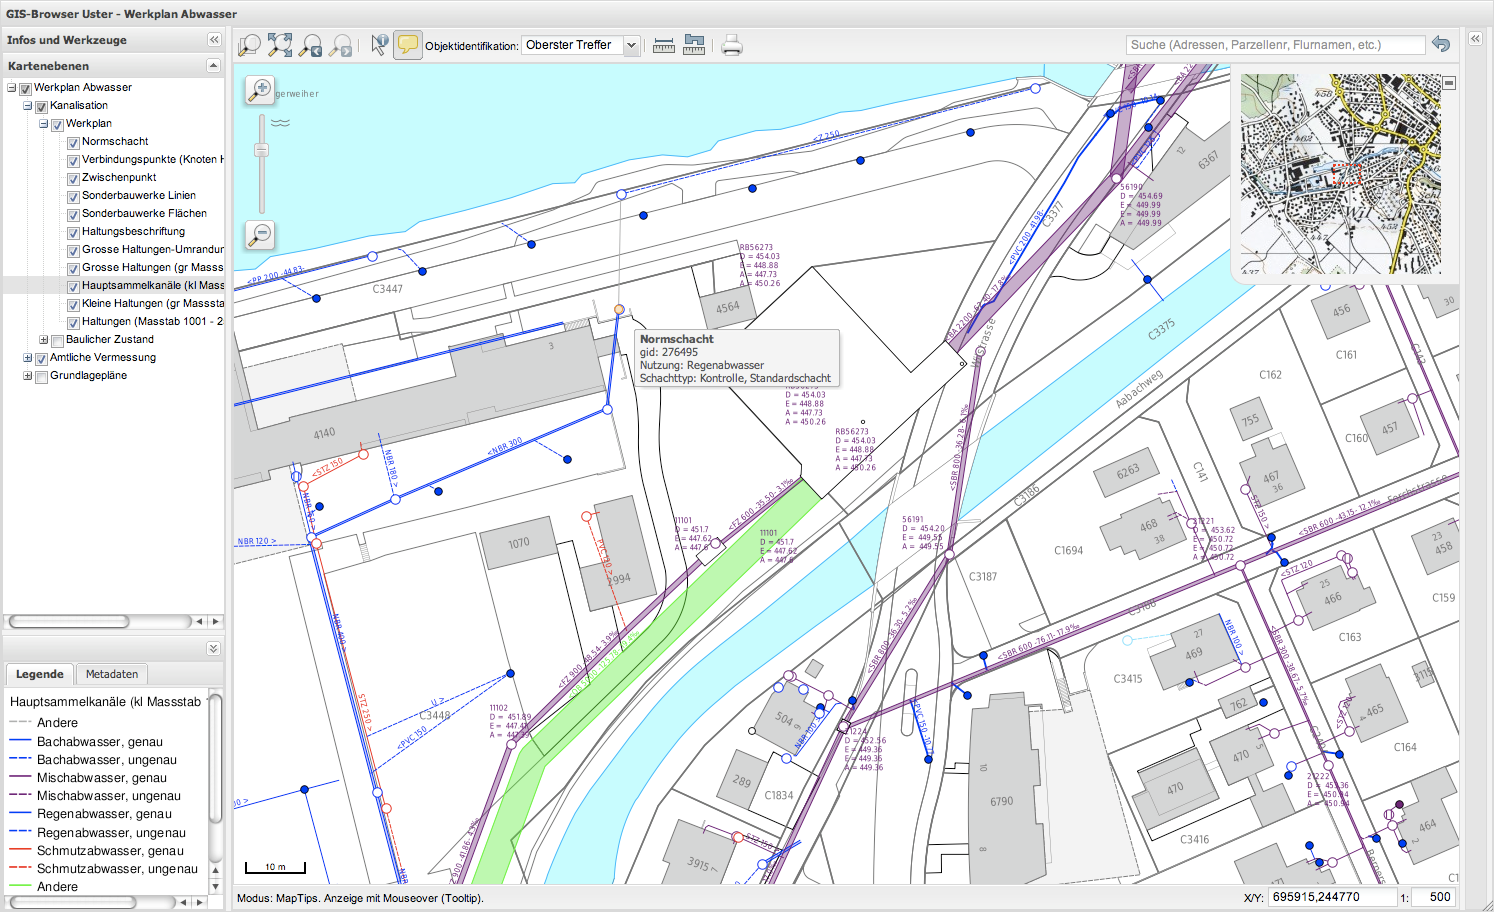 The use of QGIS in the Geodata Infrastructure of the City of